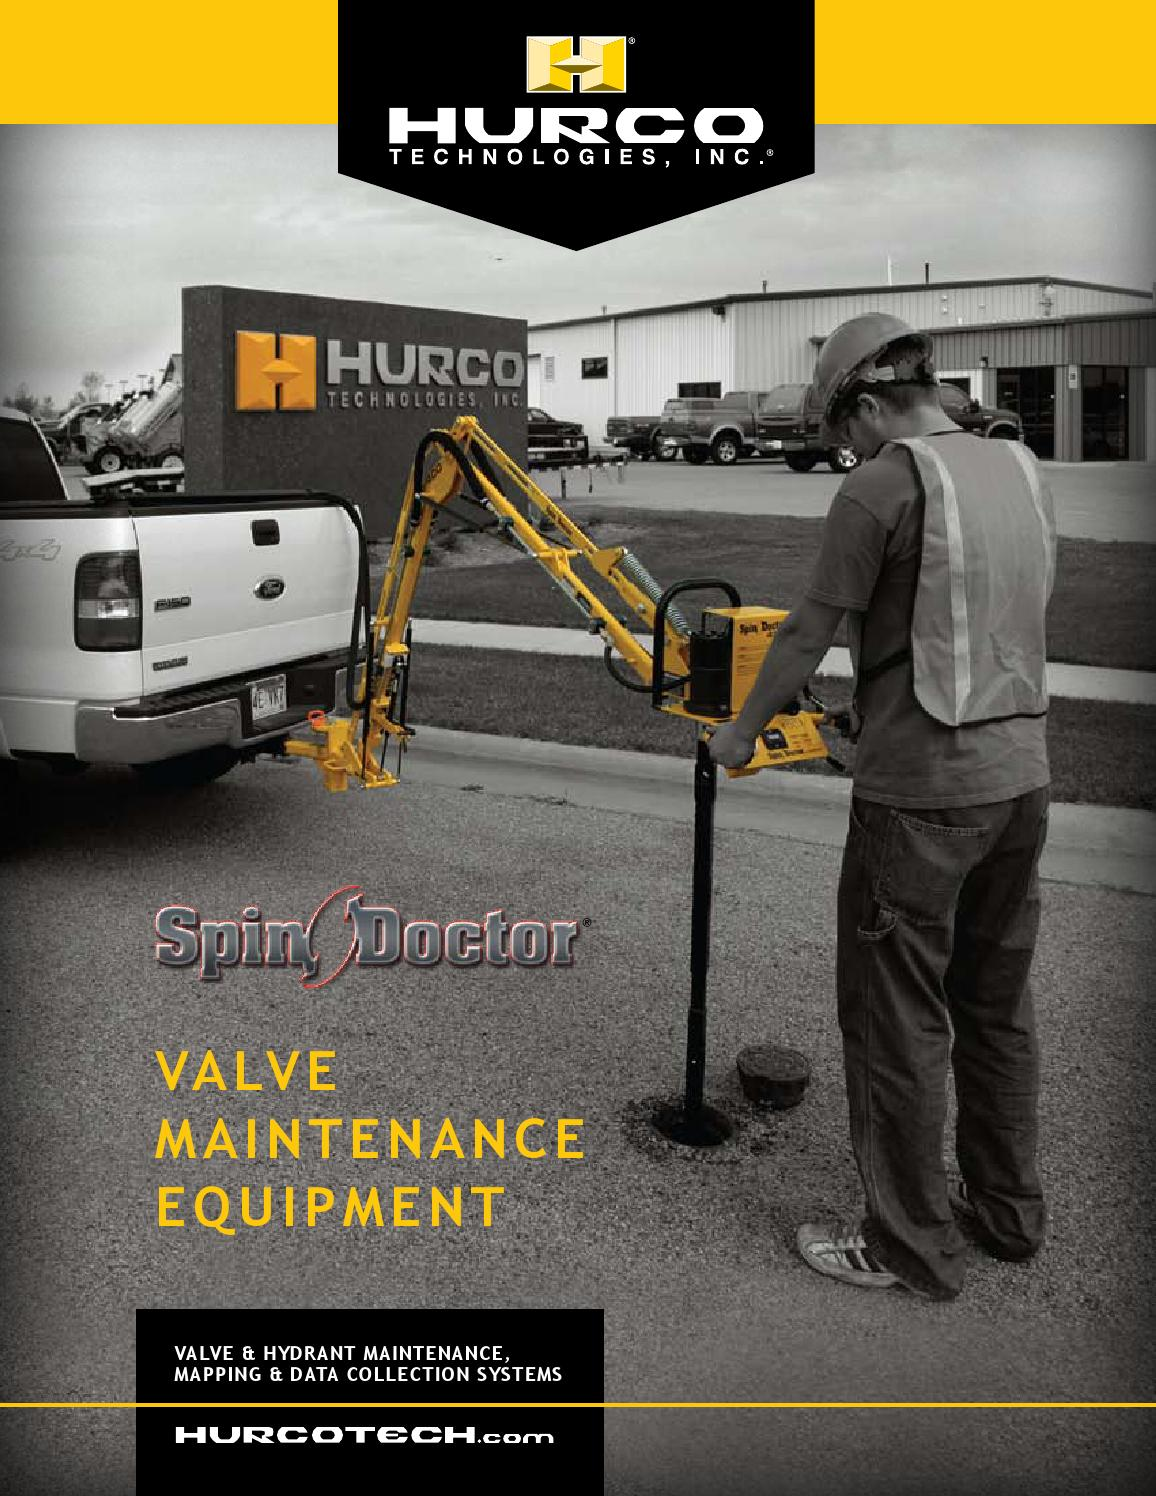 Hurco Technologies Spin Doctor Product Brochure by iDesign